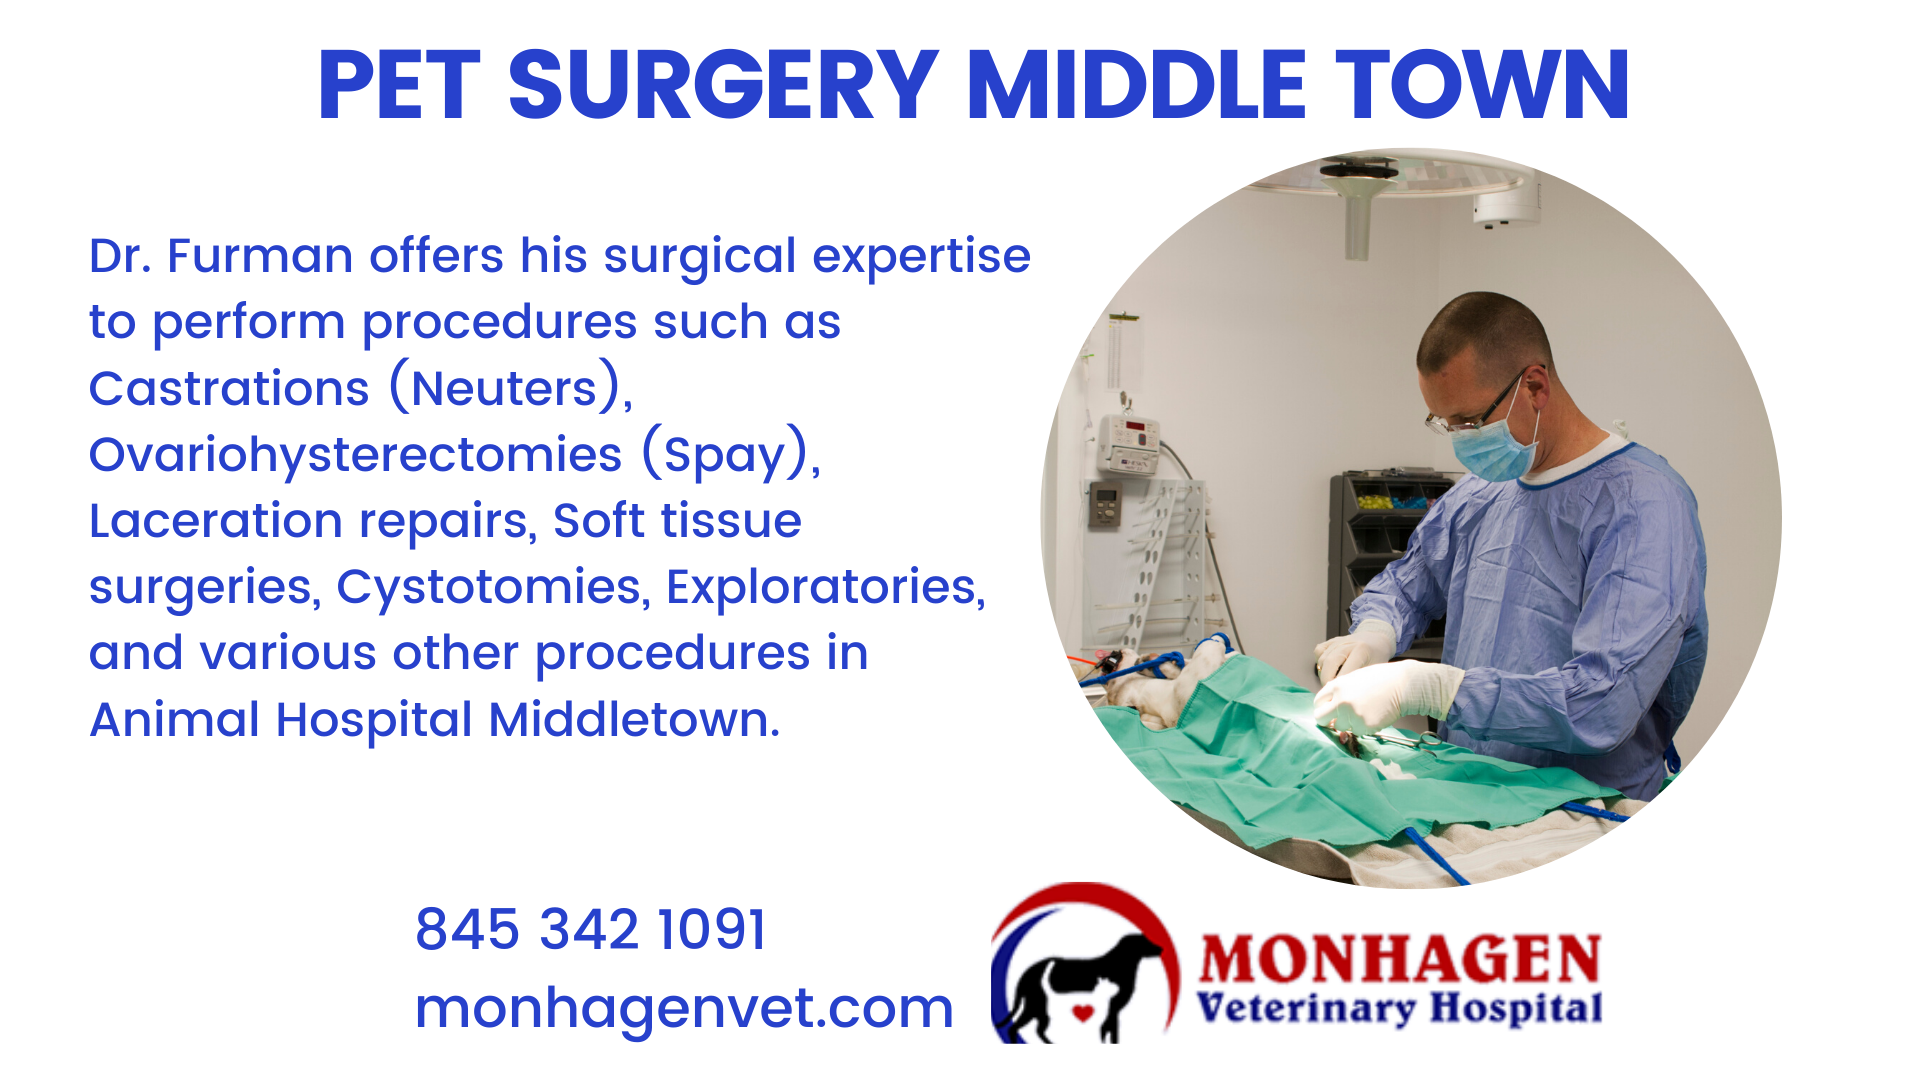 Pet Surgery Animal Hospital Middletown In 2020 Animal Hospital